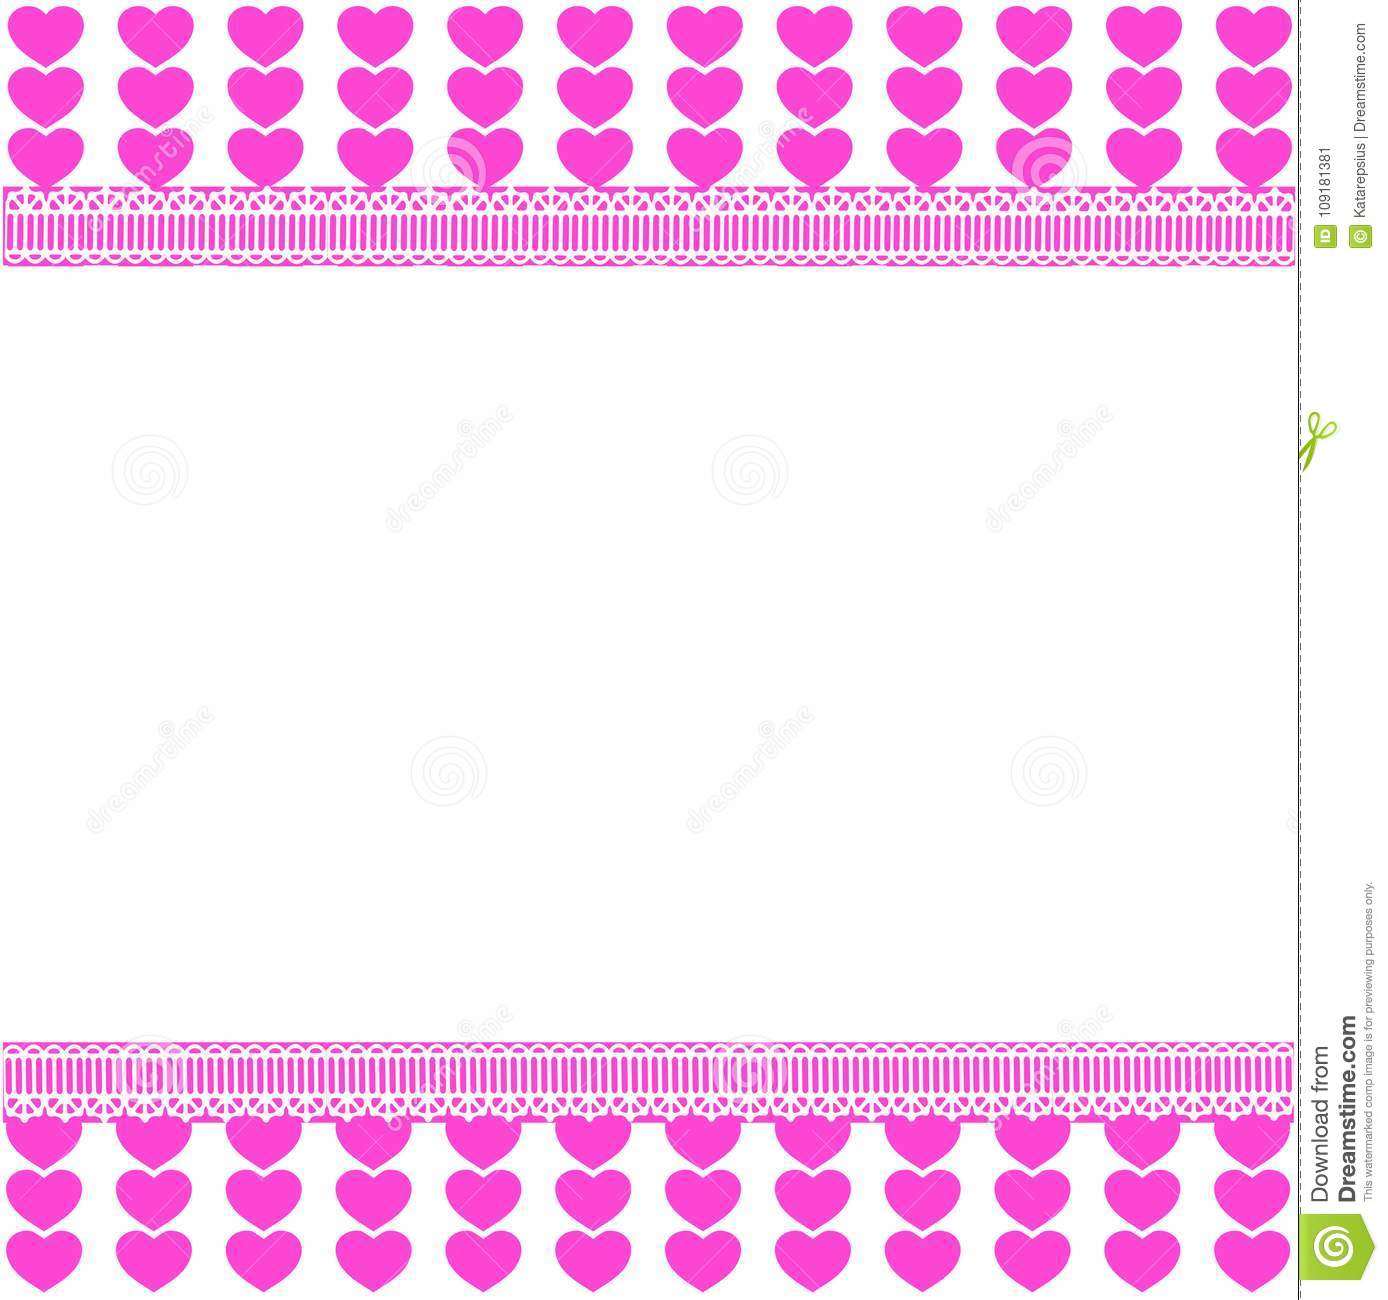 cute template with pink lined hearts pattern on white background